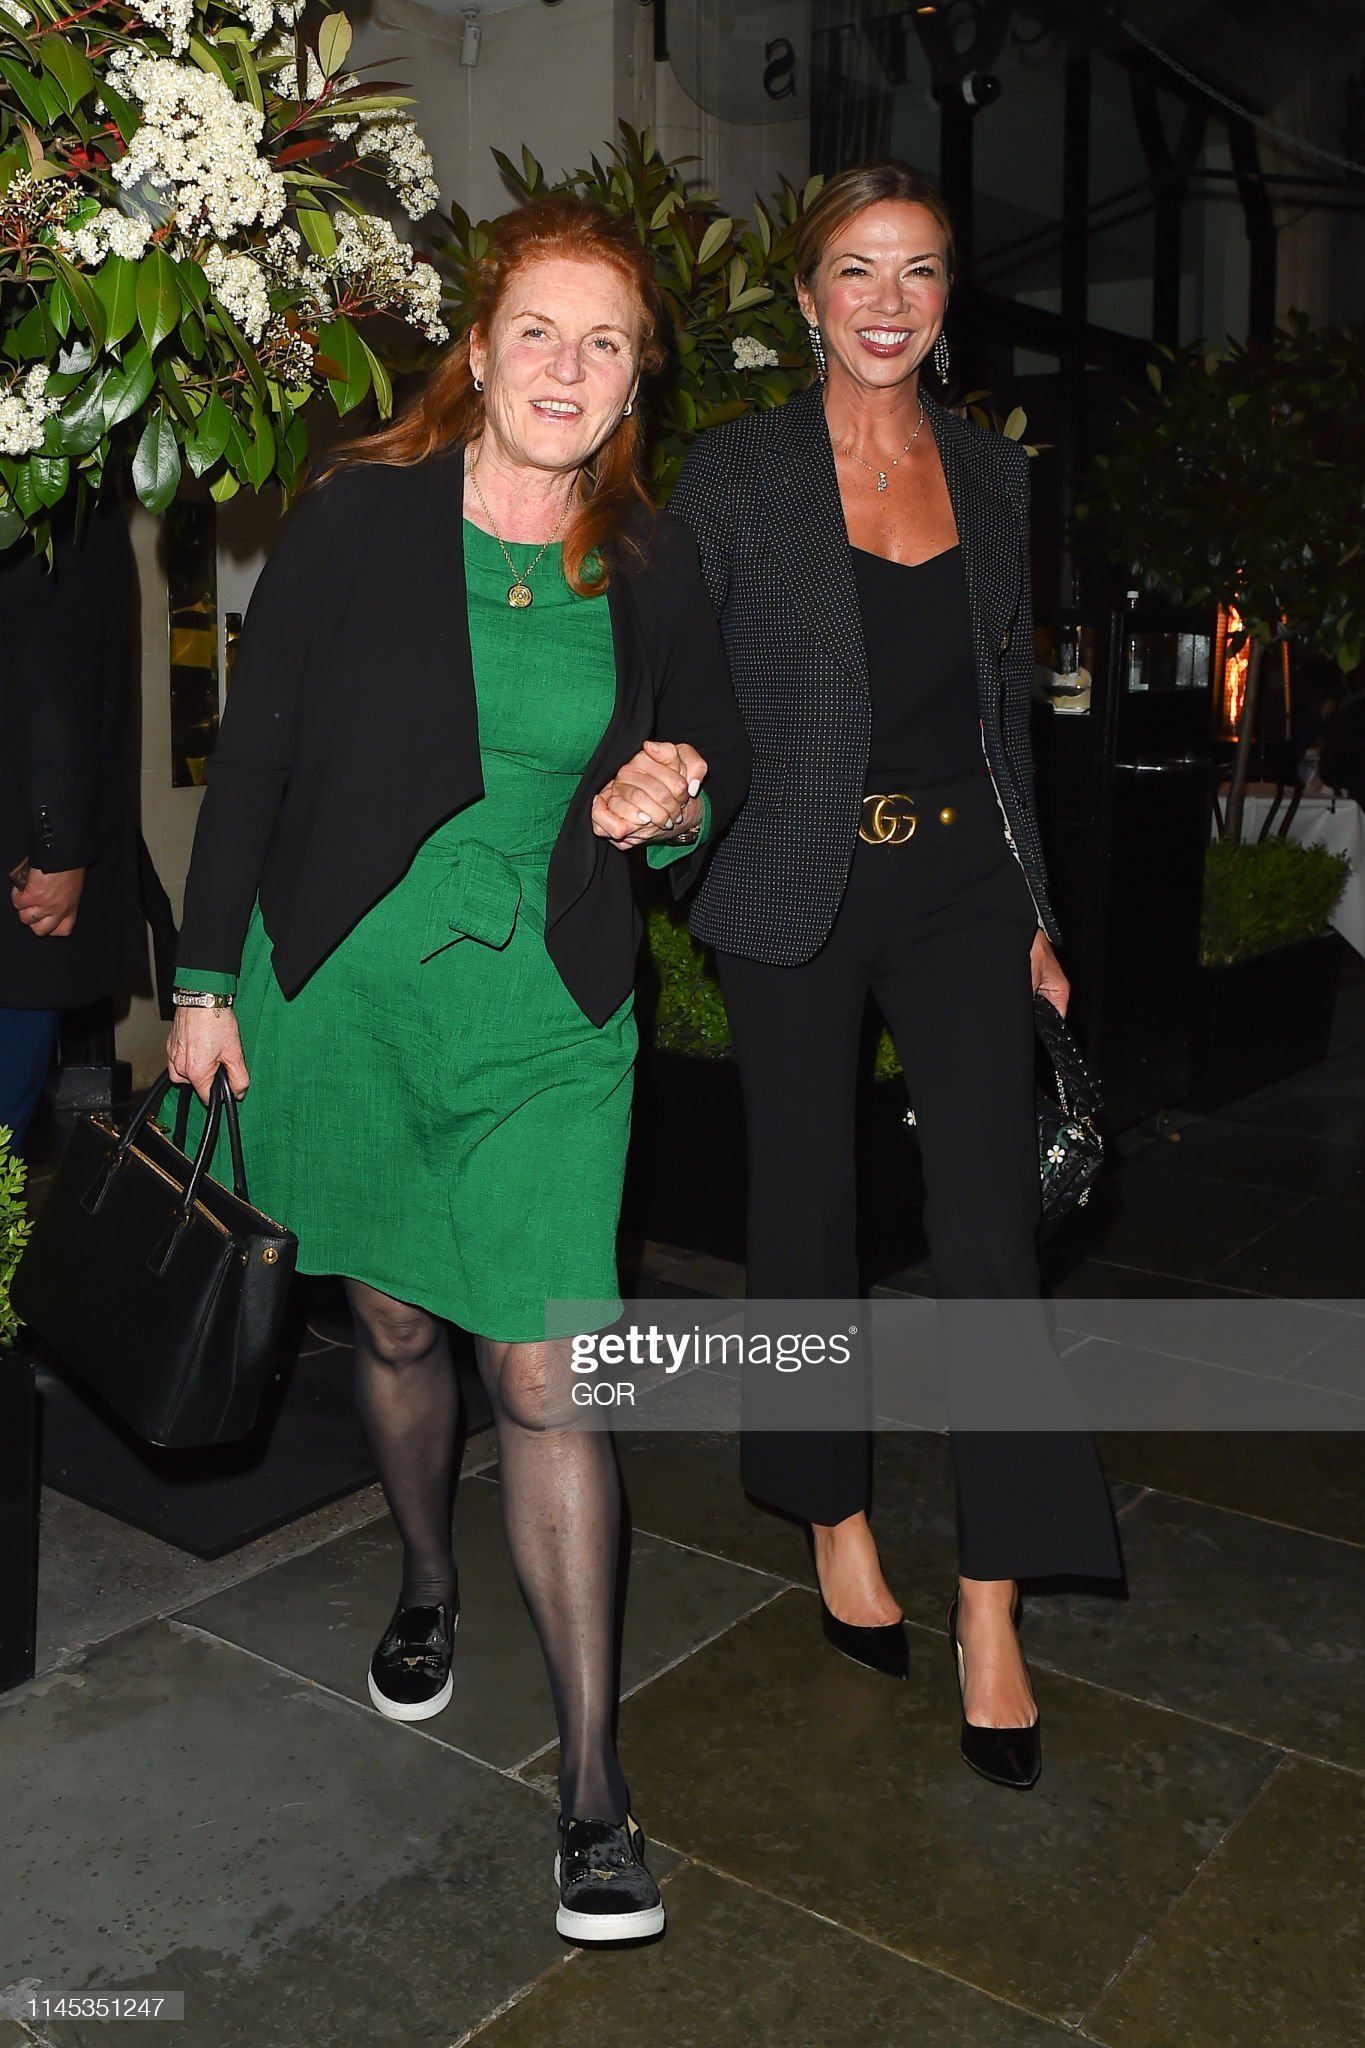 https://media.gettyimages.com/photos/sarah-ferguson-and-heather-kerzner-seen-leaving-scotts-restaurant-in-picture-id1145351247?s=2048x2048